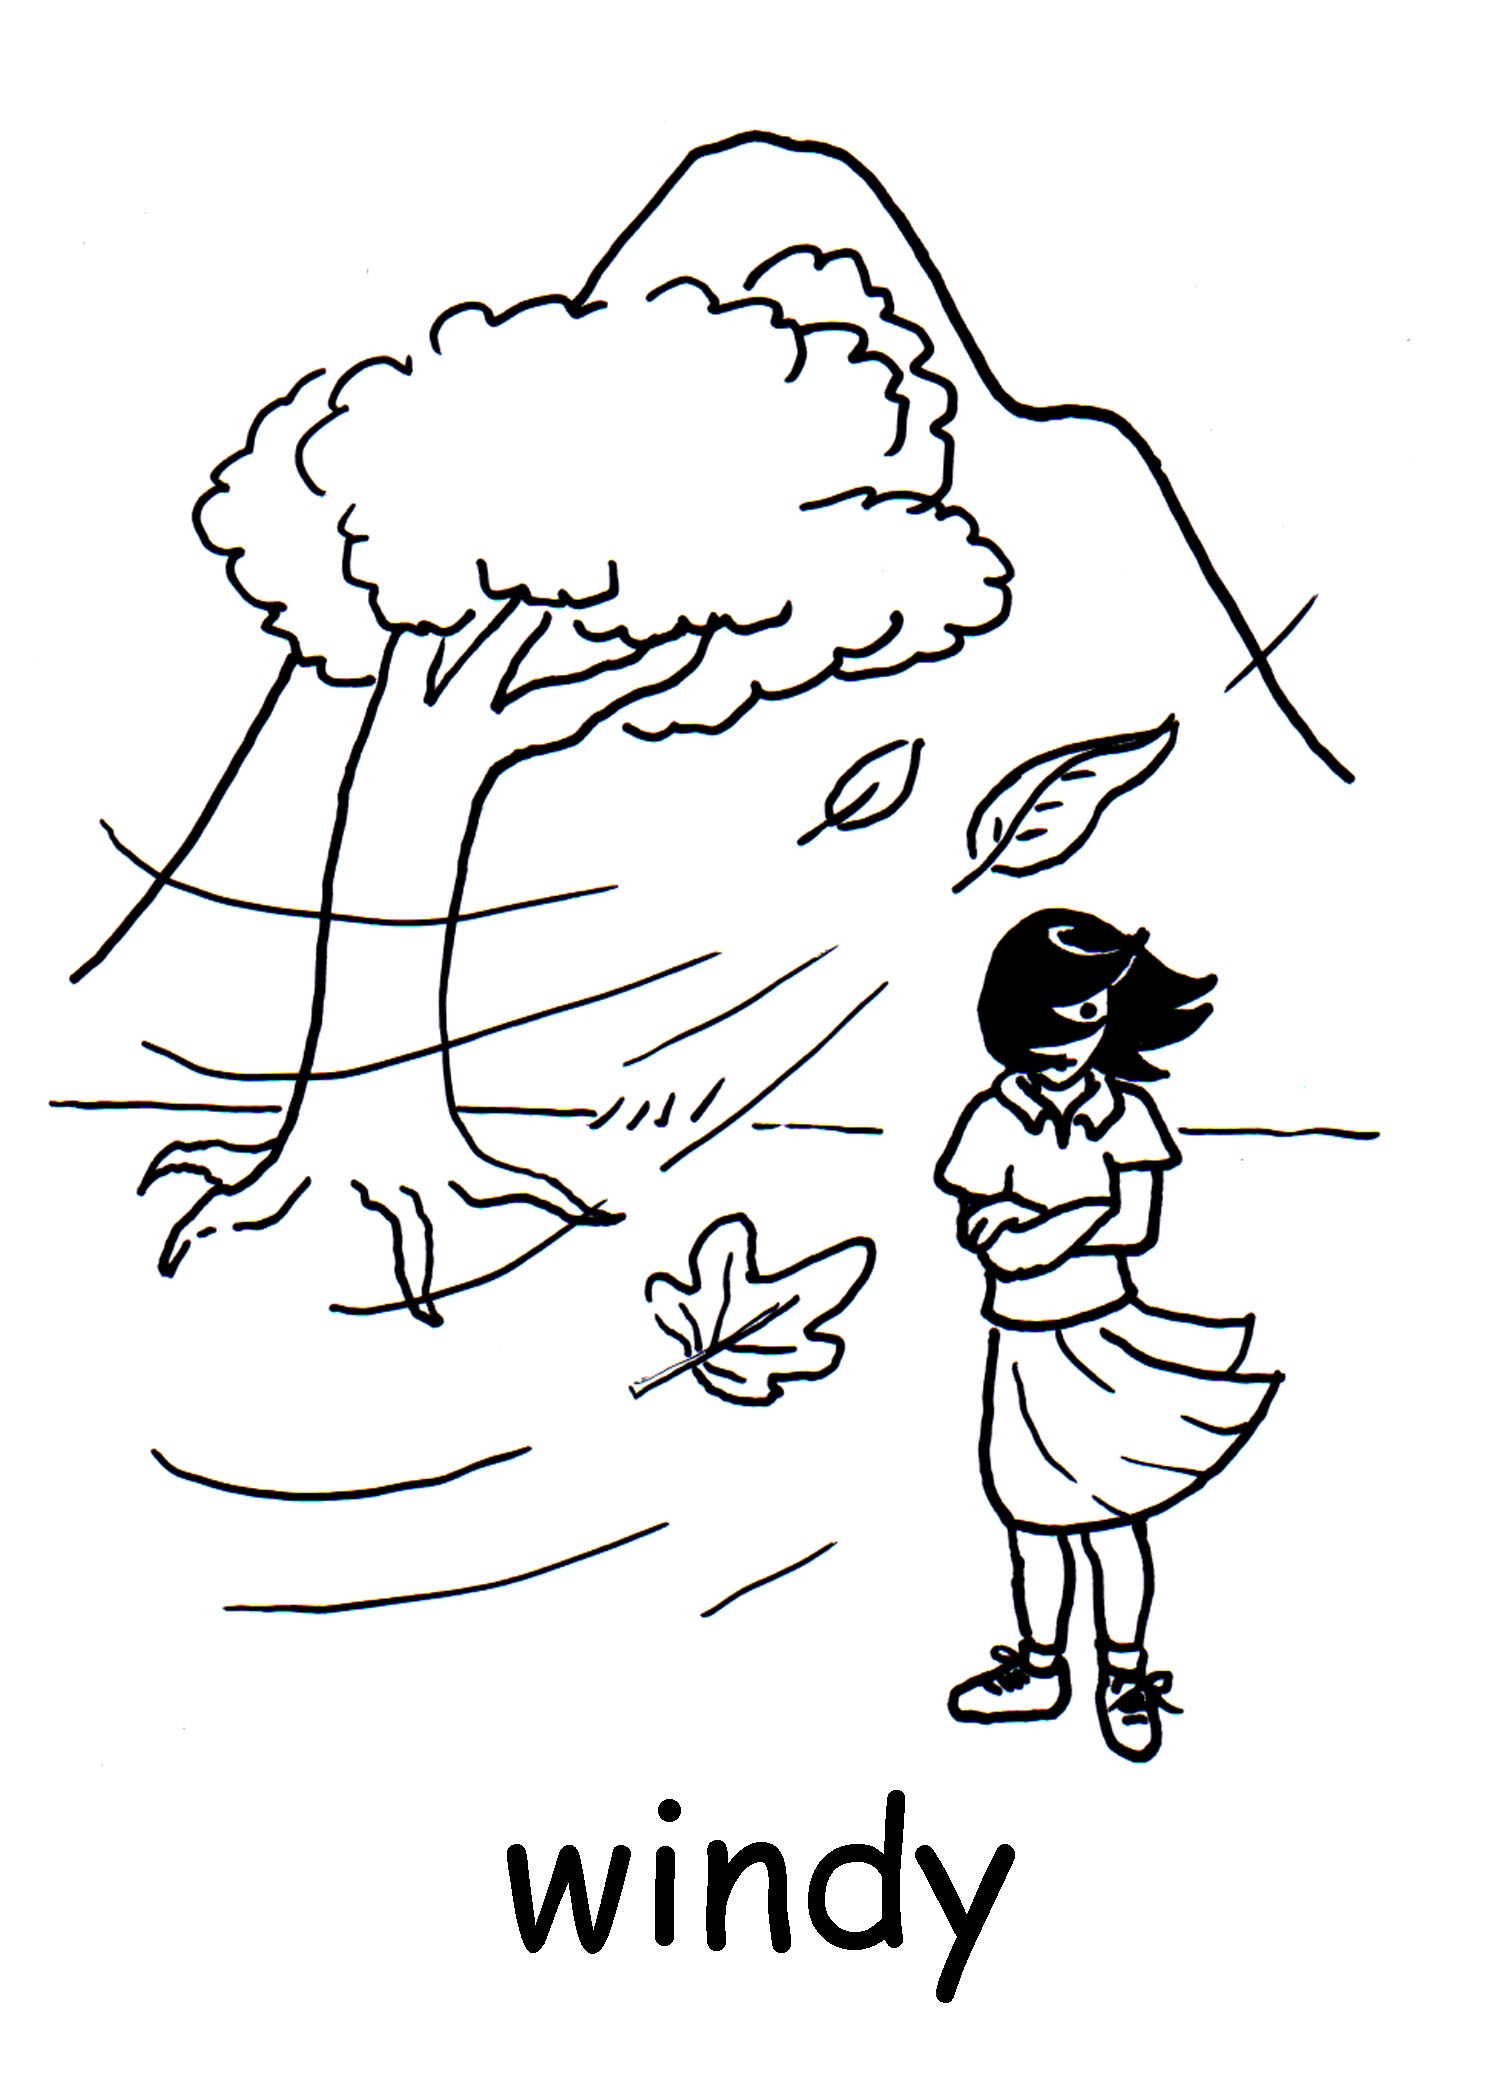 Windy clipart kind weather. Unique gallery digital collection